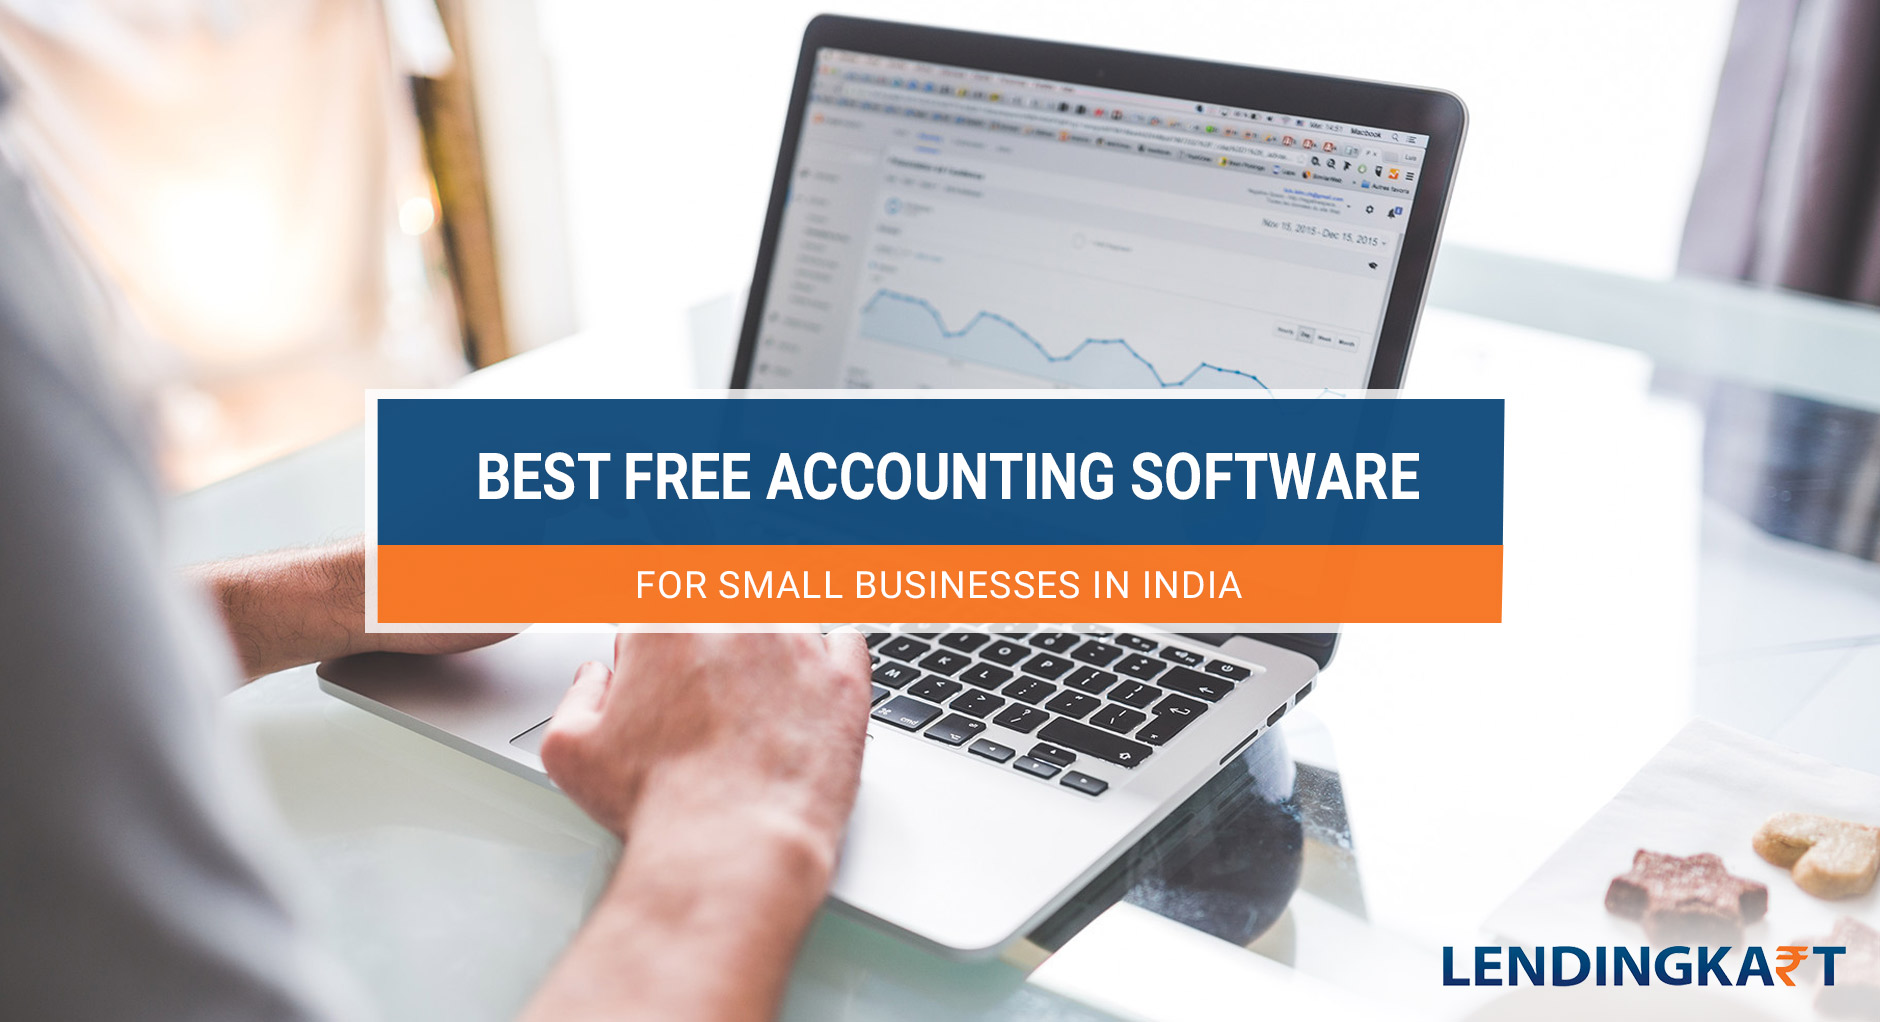 Best Free Accounting Software for Small Business in India